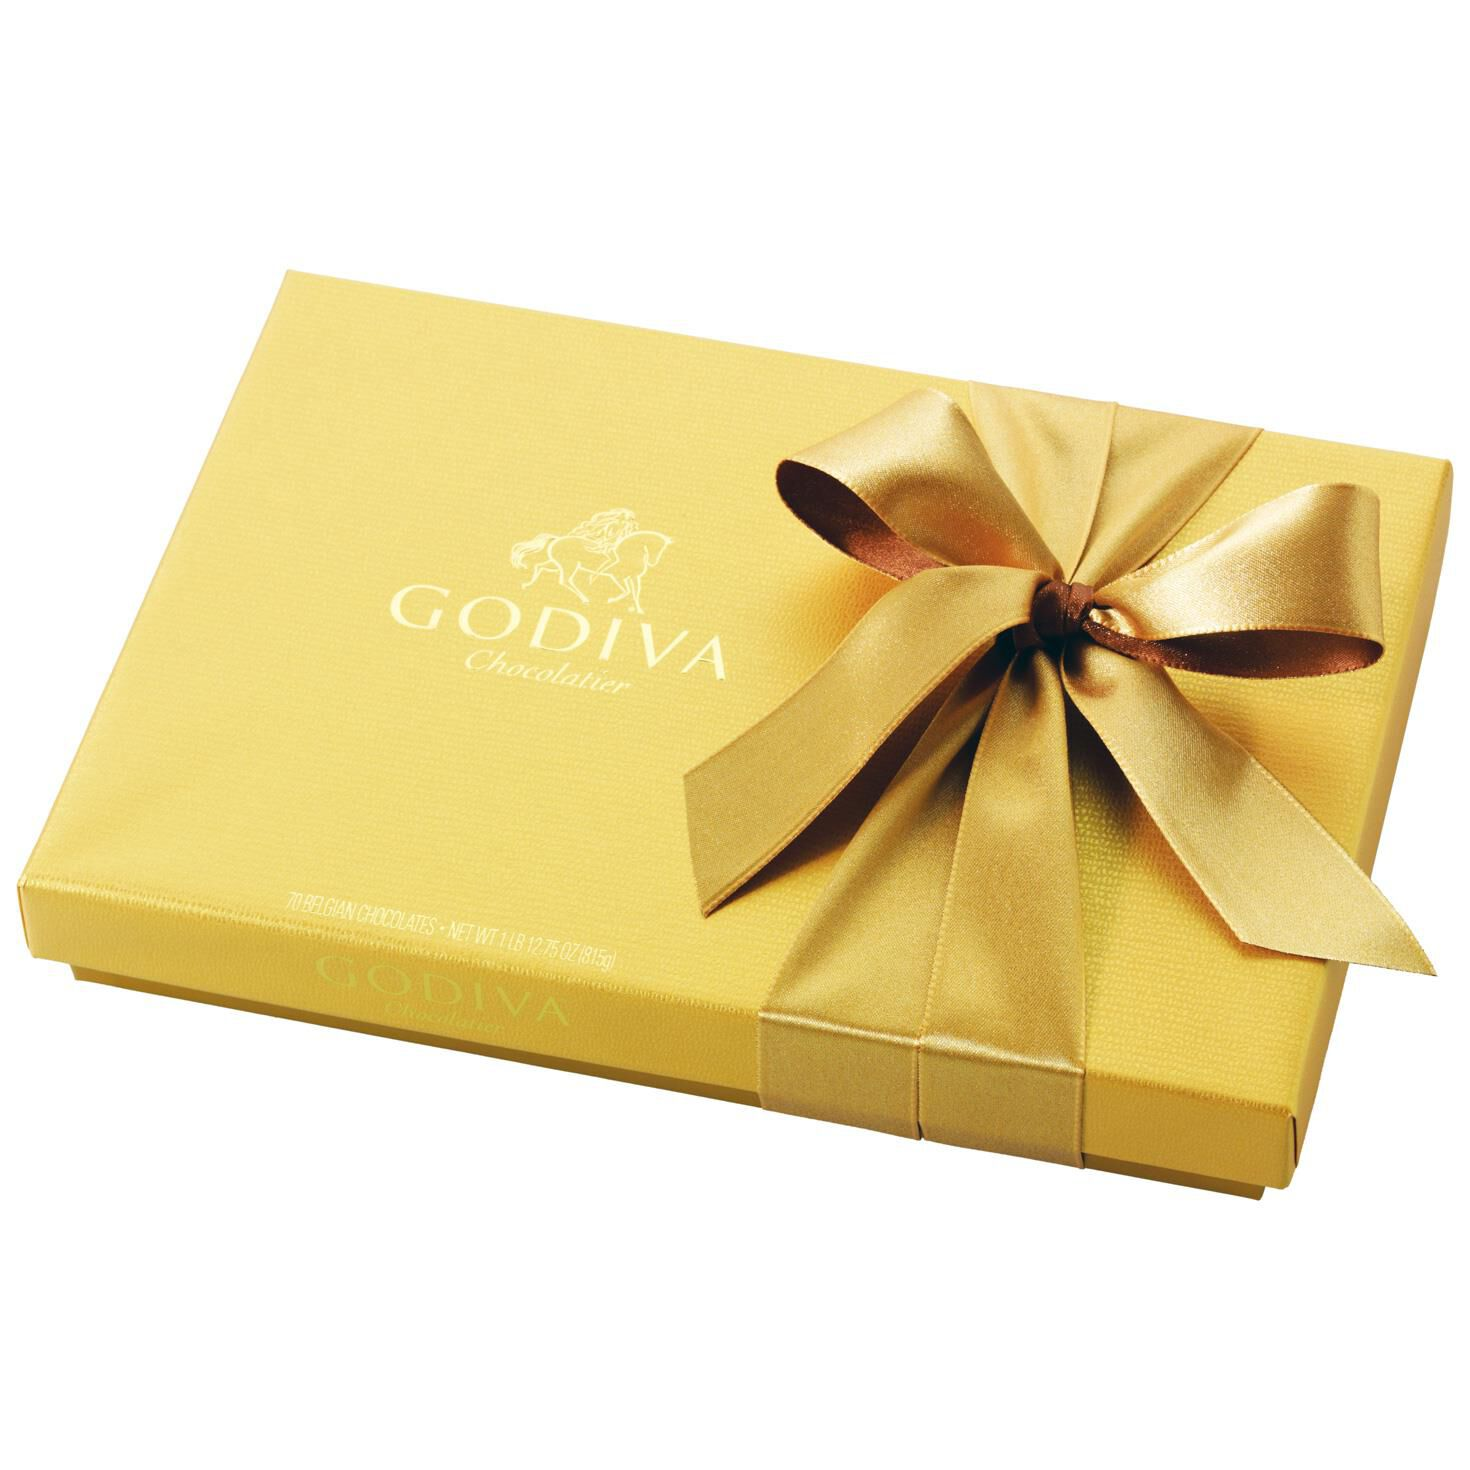 Godiva Chocolatier Assorted Chocolates in Gold Gift Box, 36 Pieces ...